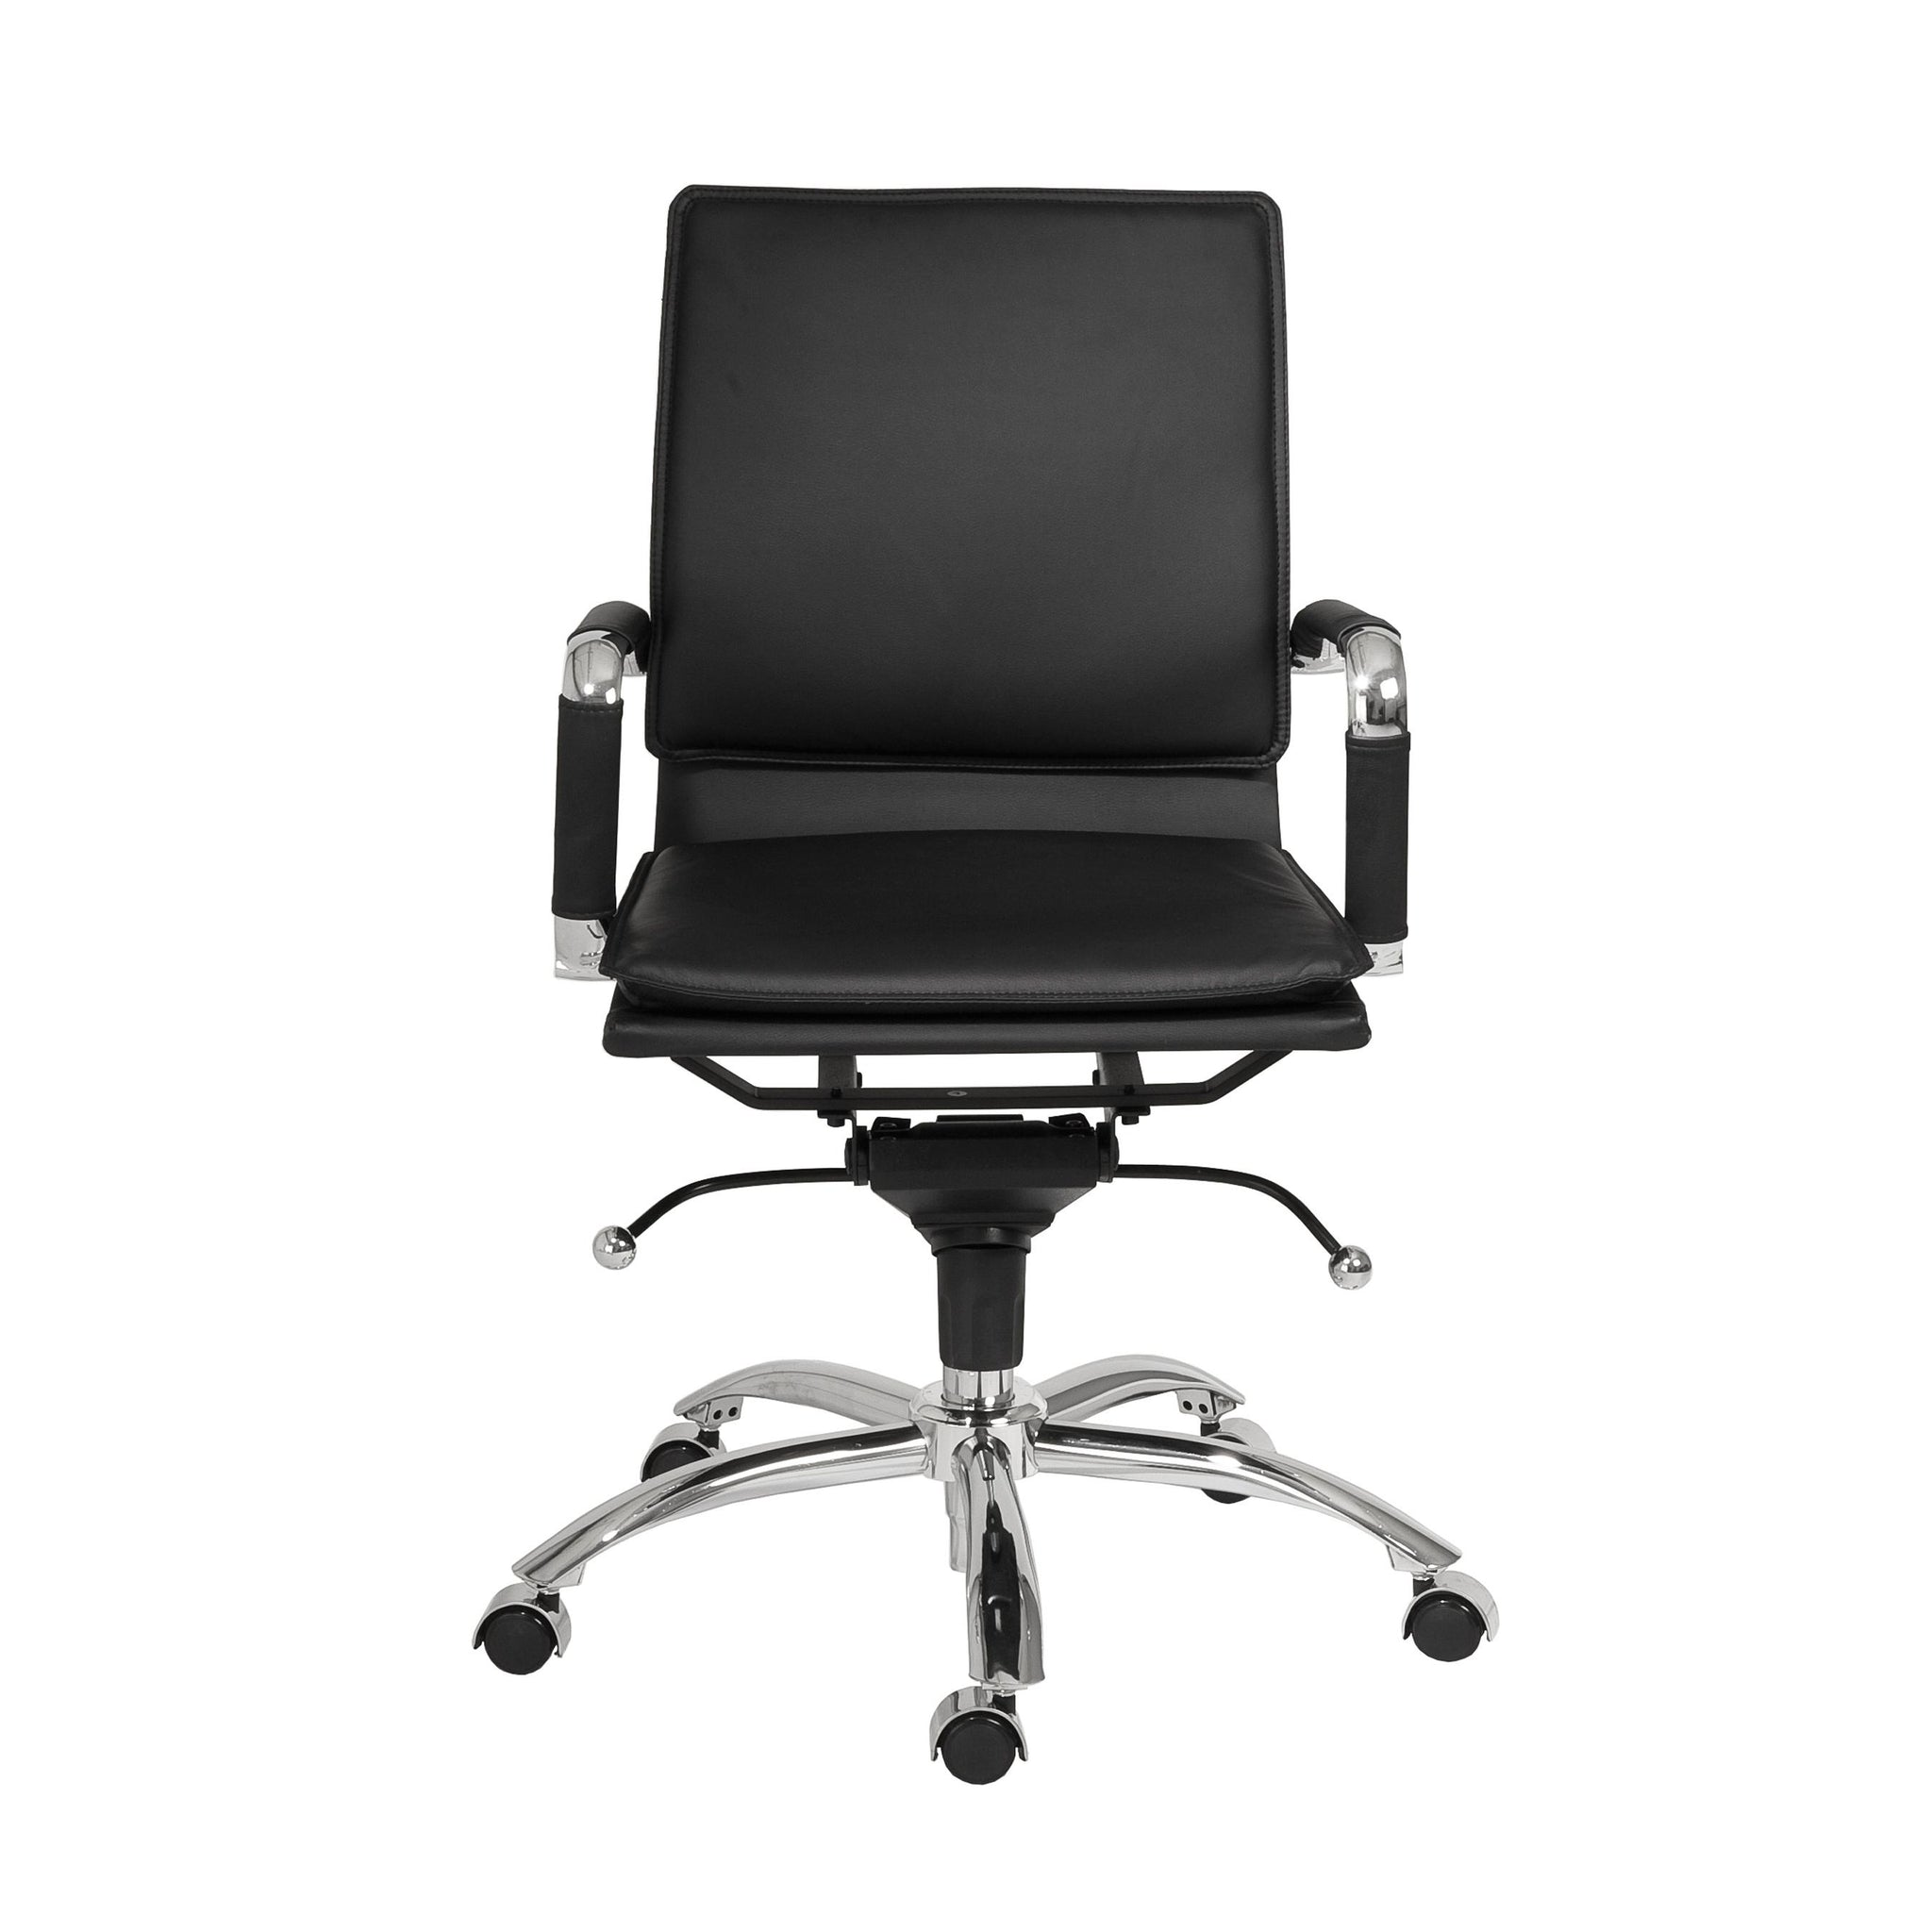 Gunar Pro Low Back Office Chairs With Arms And Wheels Fast